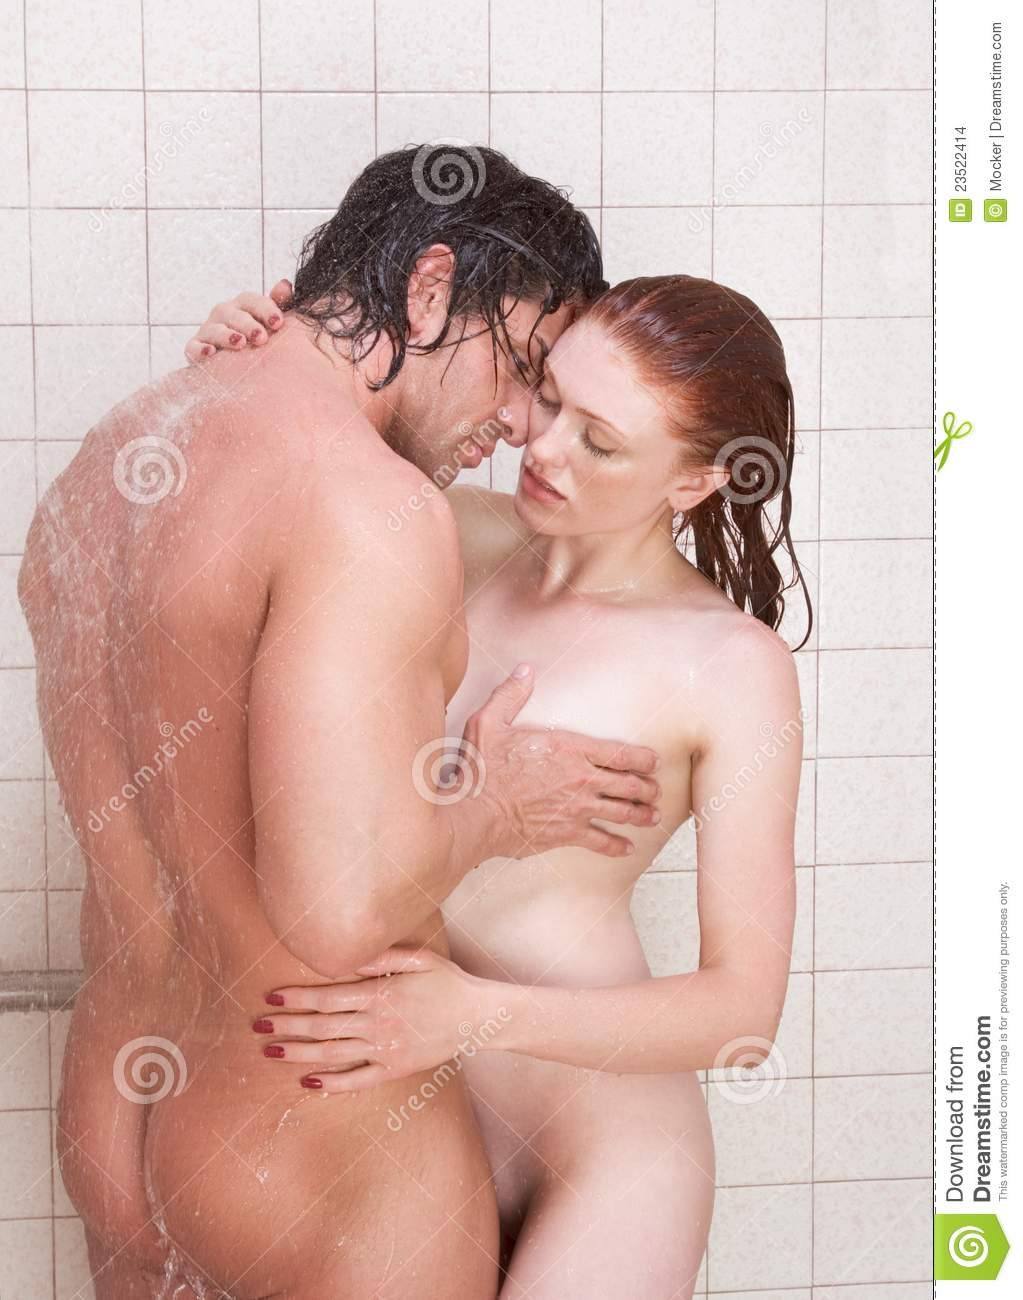 Sexy couple shower